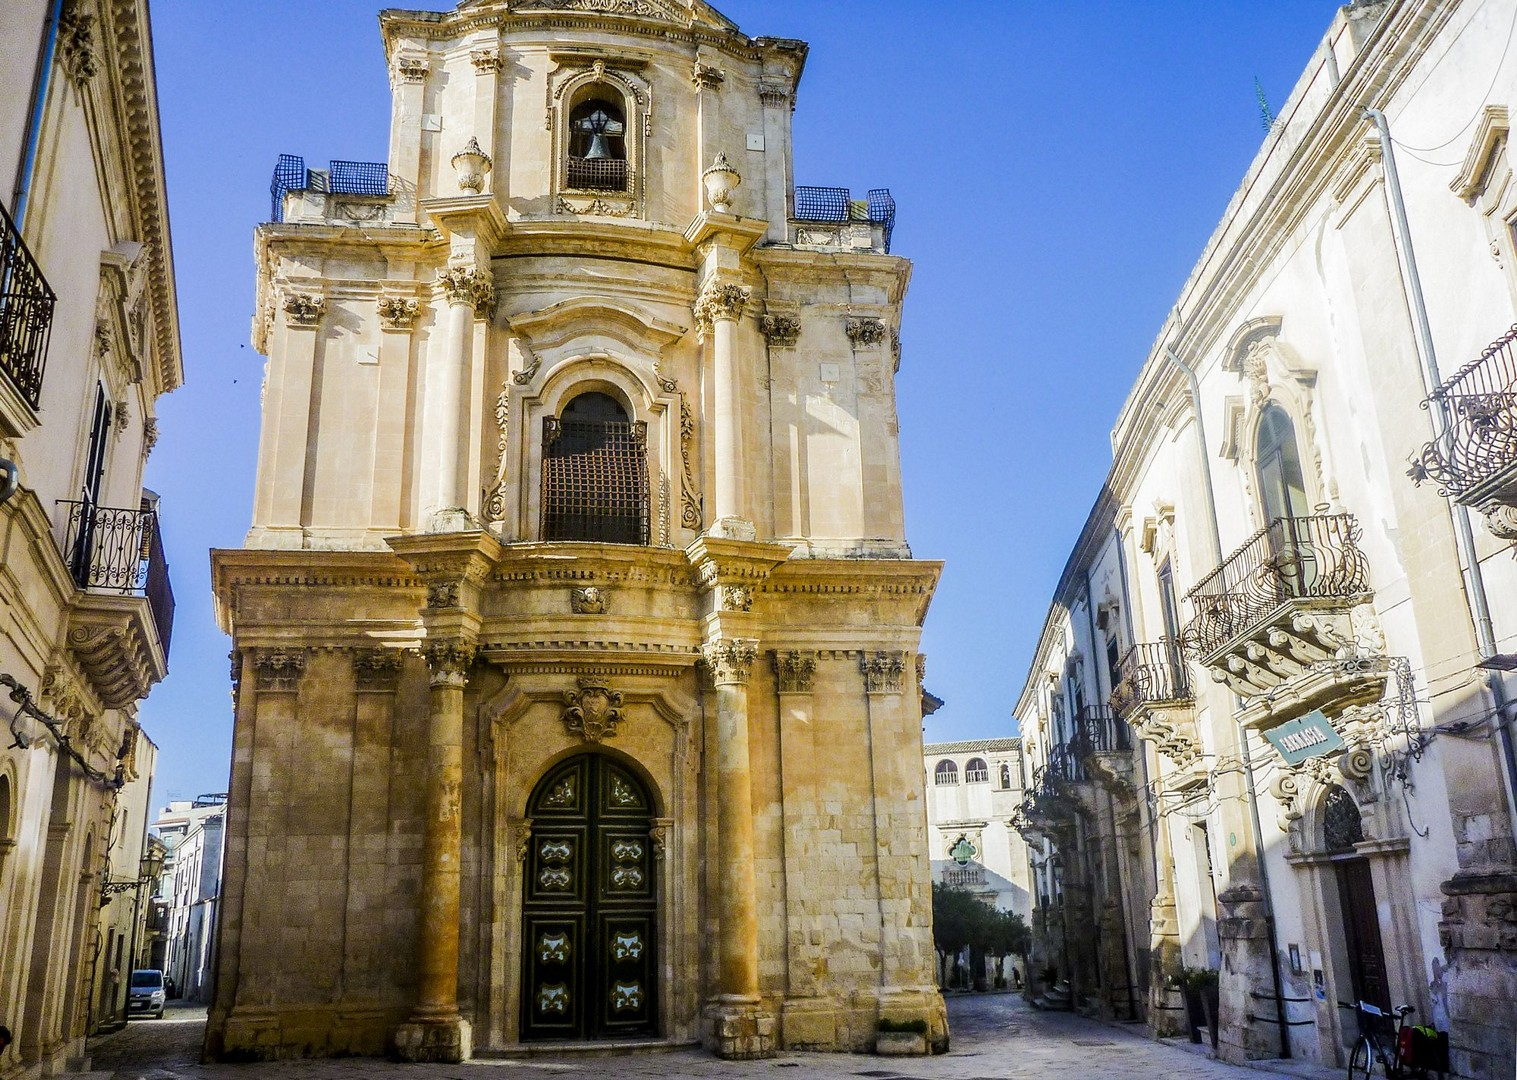 traditional-baroque-towns-modica-ragusa-noto-sicily-cycling.jpg - Italy - Sicily - Self-Guided Leisure Cycling Holiday - Leisure Cycling